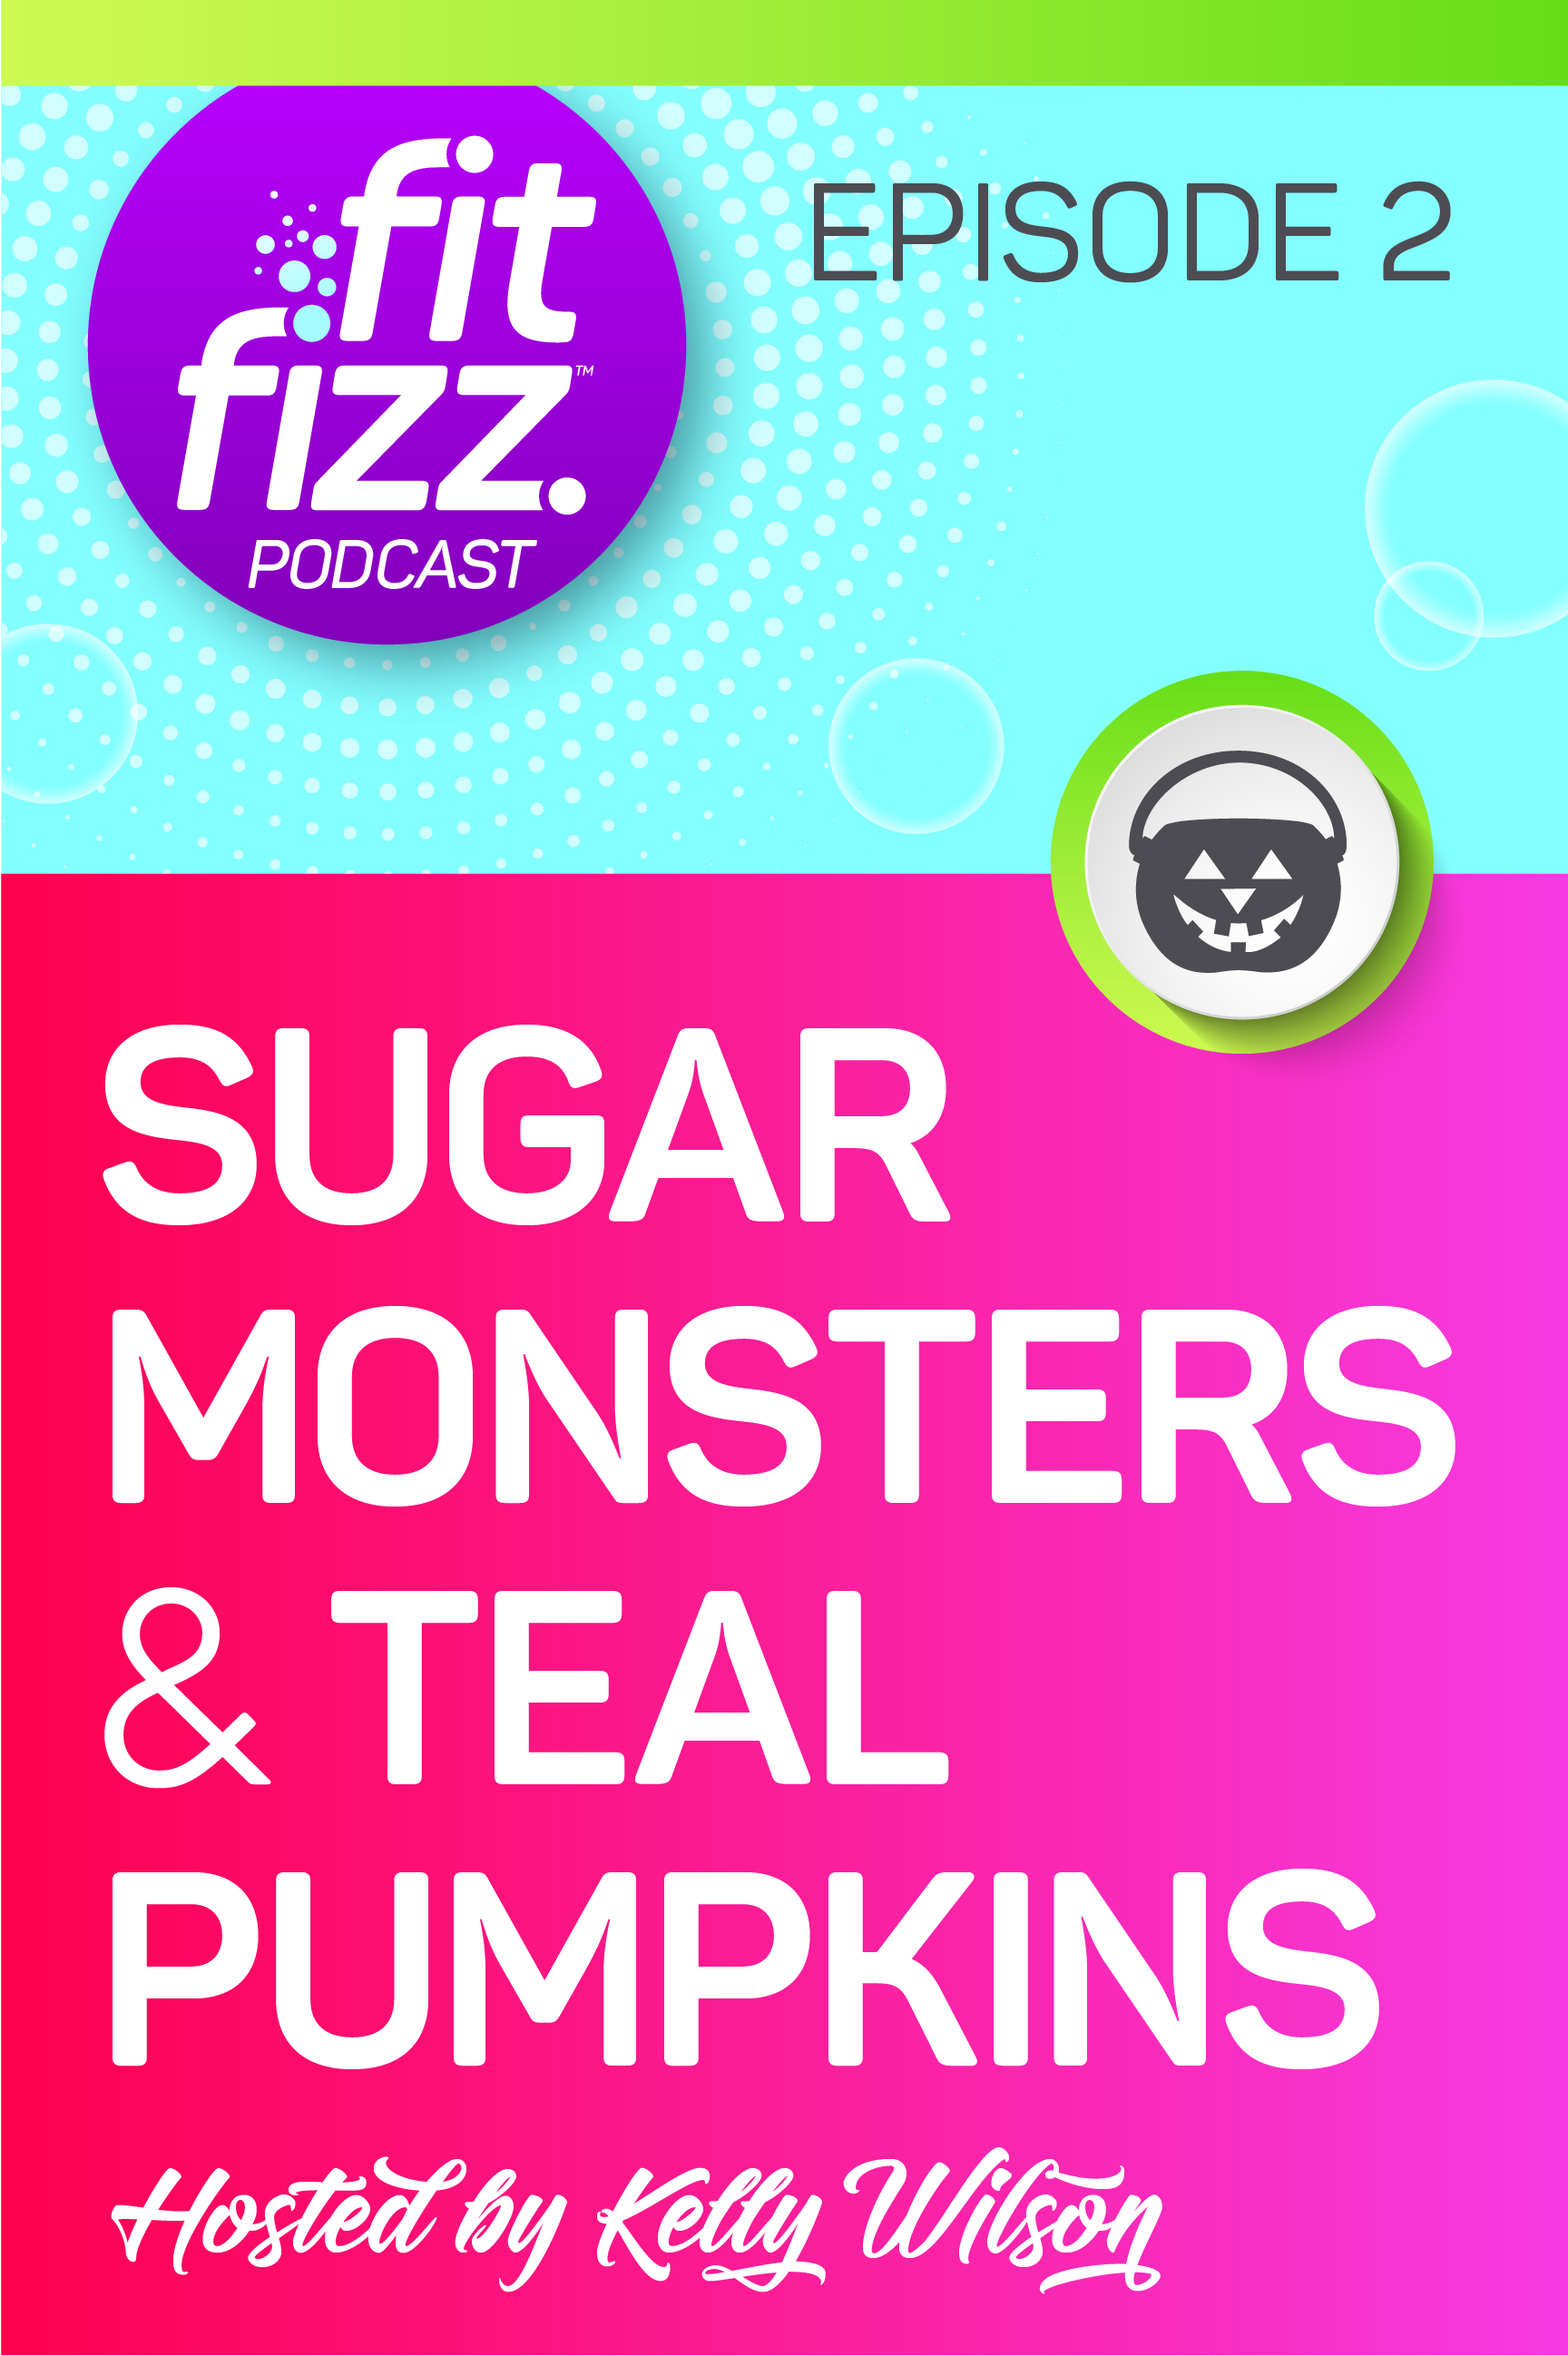 FitFizz Podcast, Episode 2: Sugar Monsters and Teal Pumpkins. Join the FREE 5-Day Flush the Sugar Fiesta! Cut back on sugar cravings without deprivation, 47 pages of free coaching and 25 recipes. Chocolate is included!